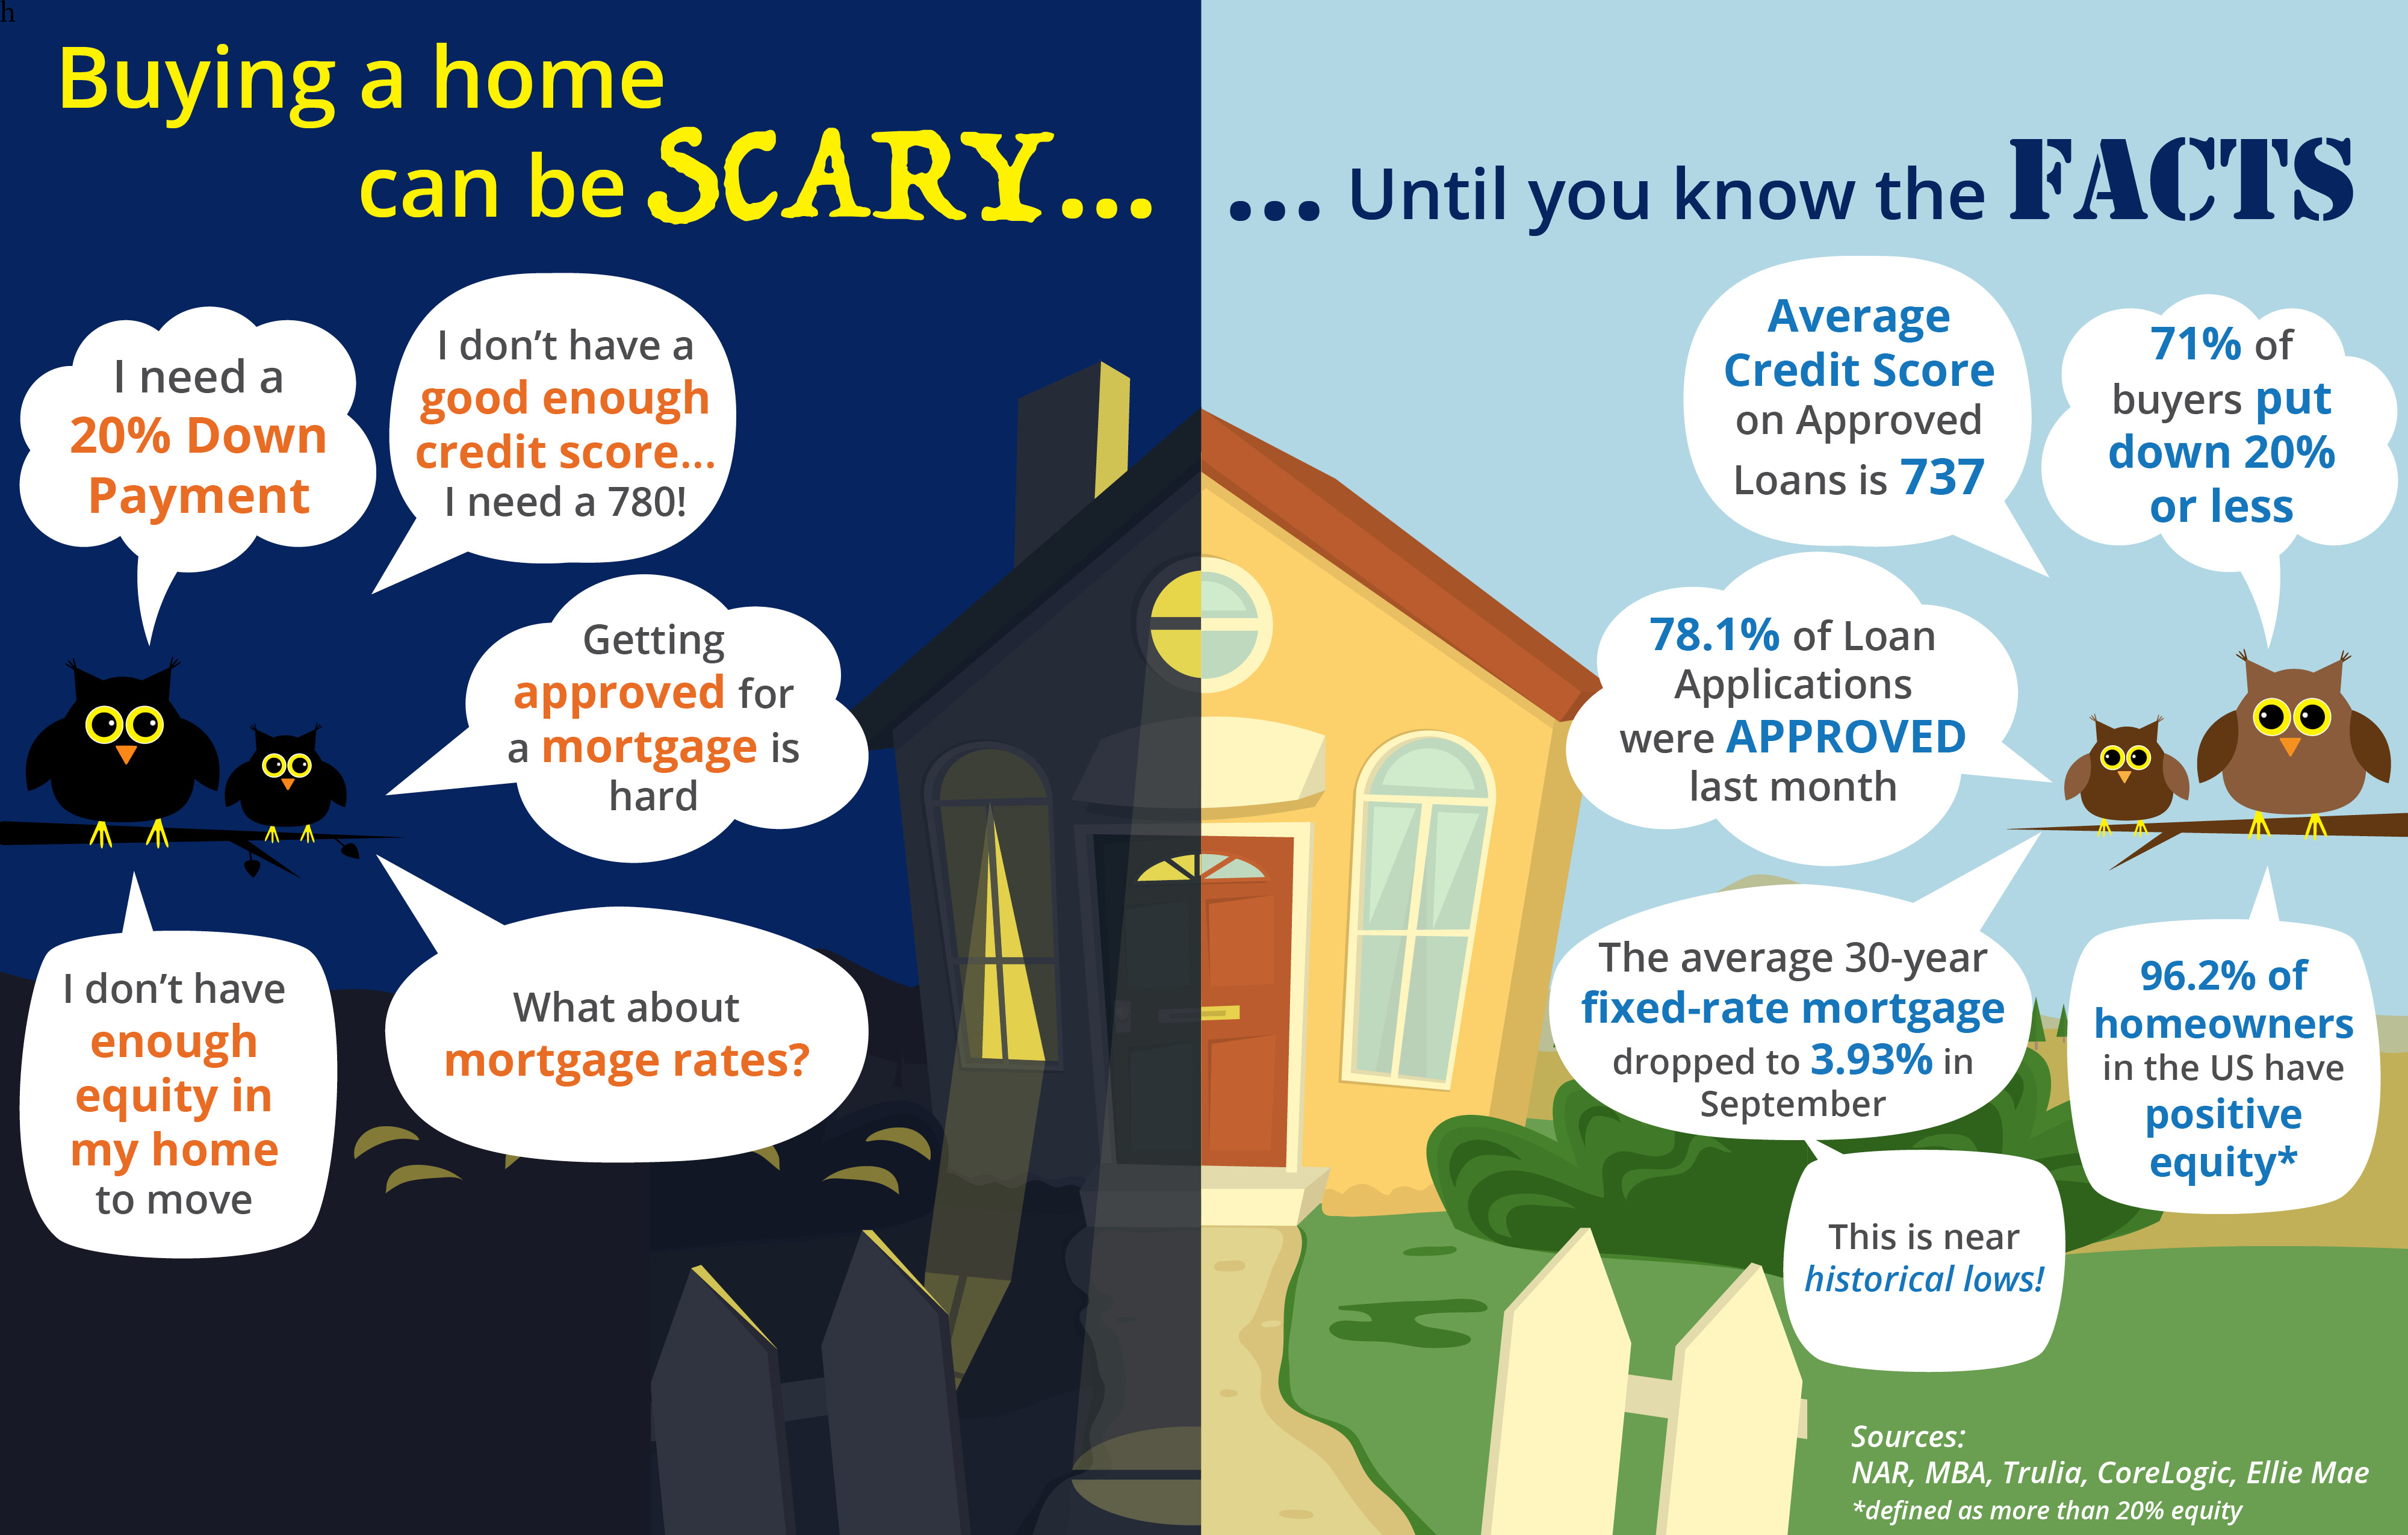 Buying a home can be SCARY…Until you know the FACTS [INFOGRAPHIC] | MyKCM